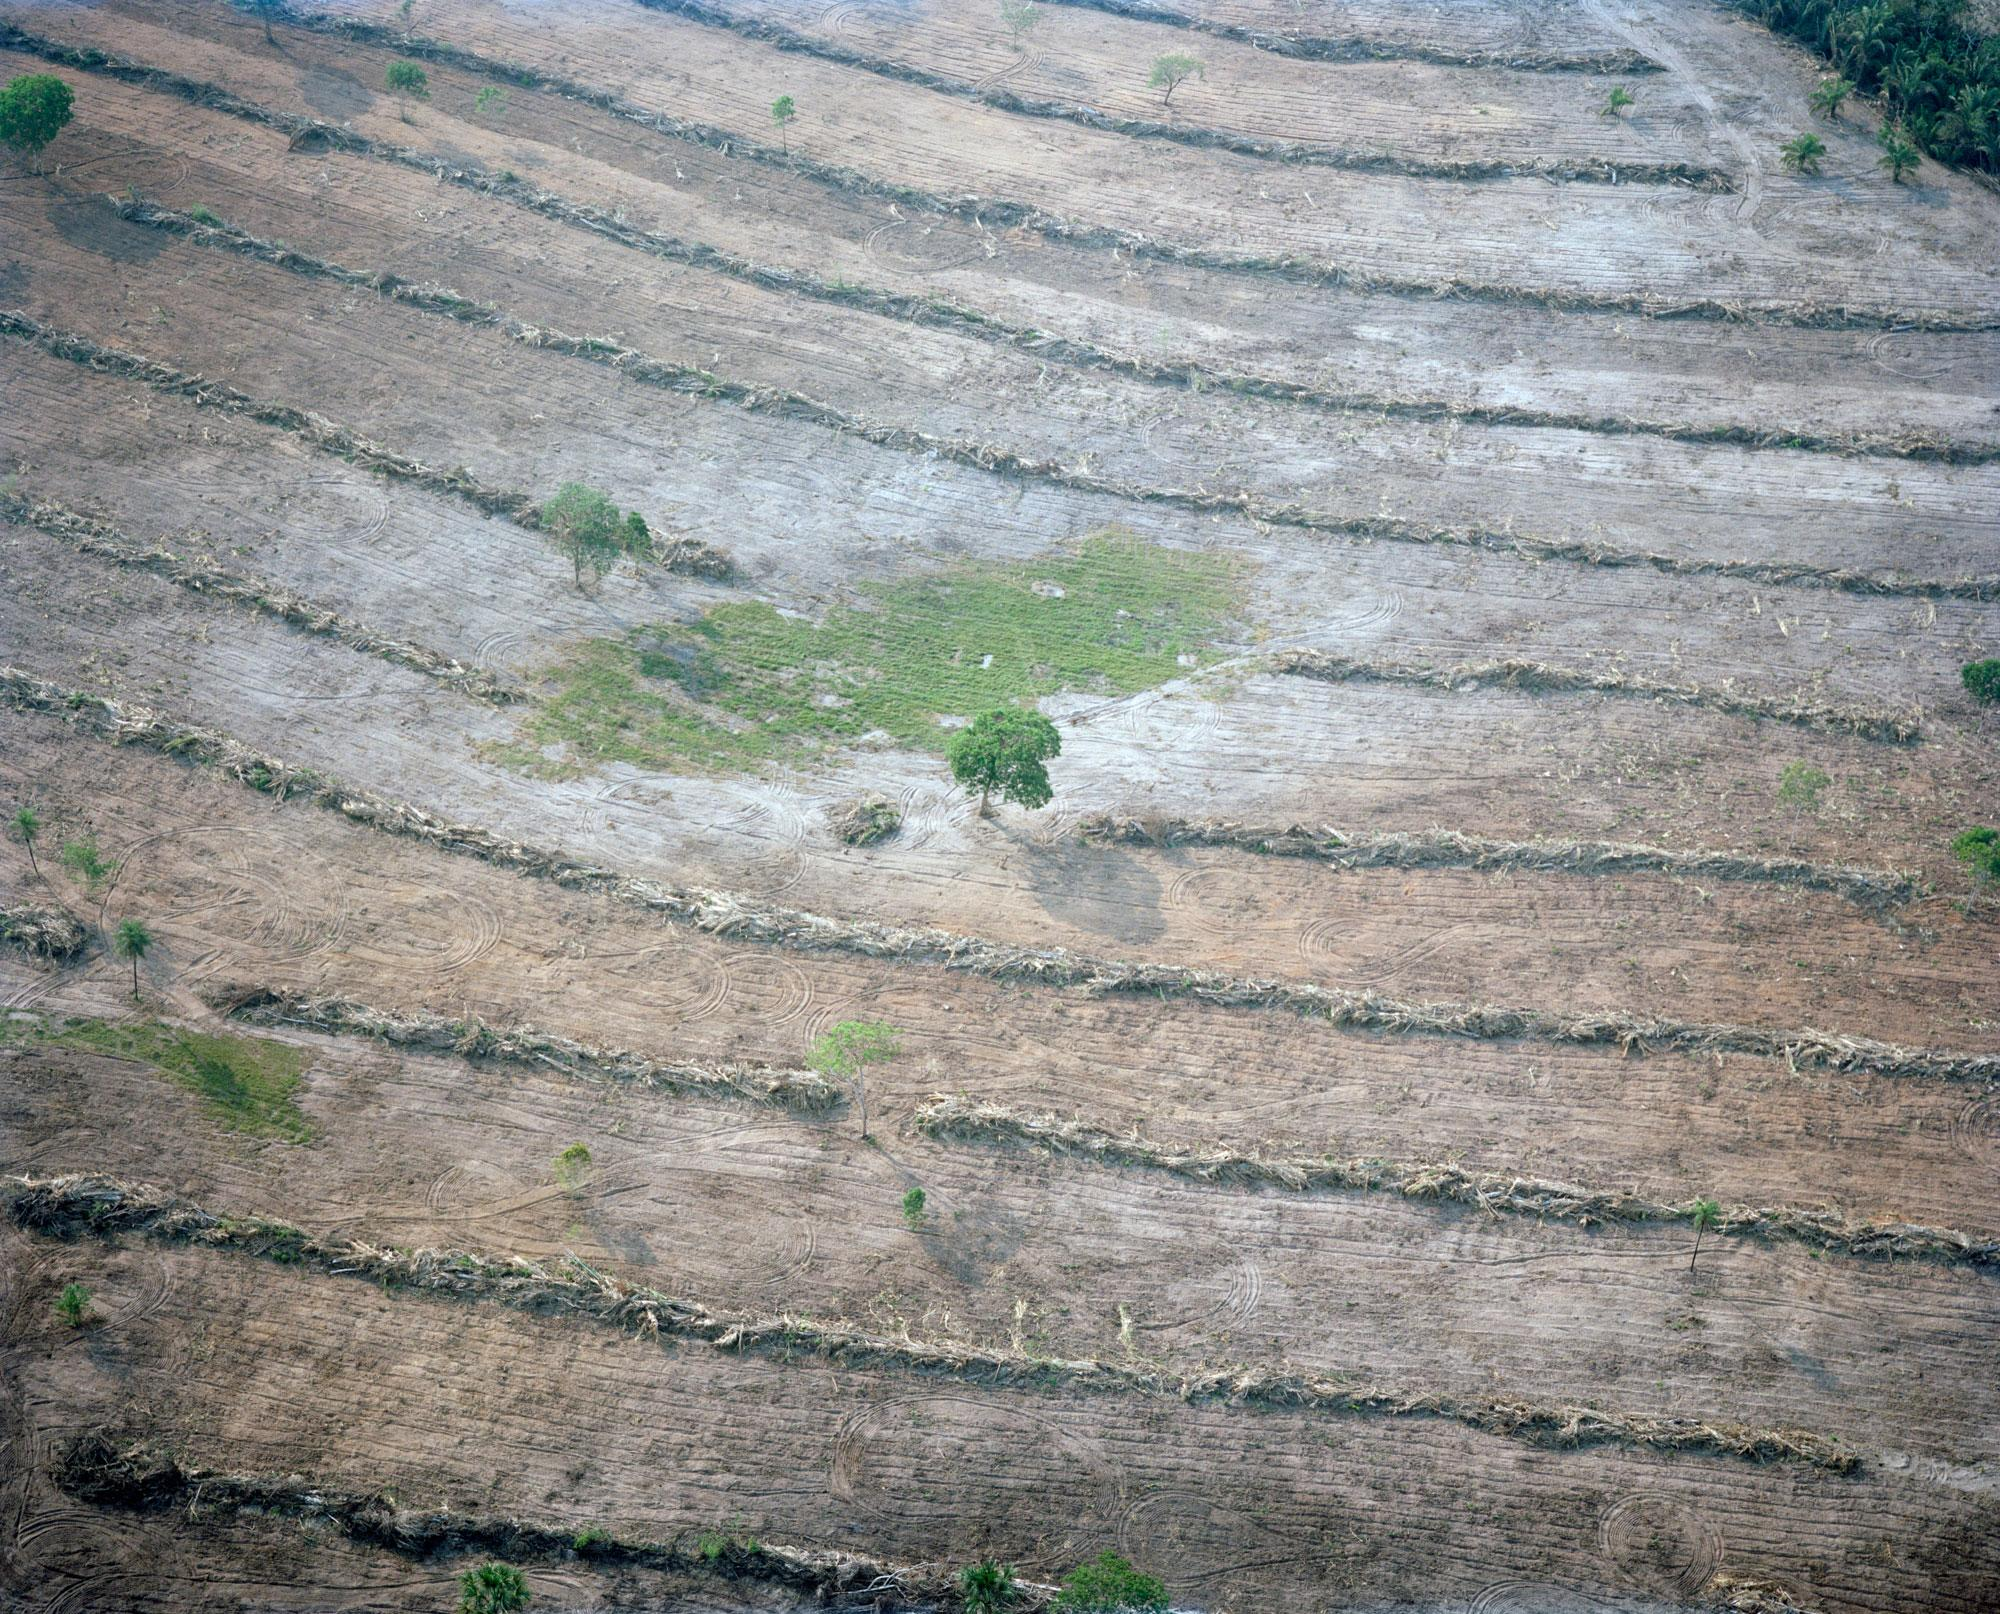 <p>Deforestation in Tangará da Serra, Mato Grosso, Brazil, 2015. Agriculture is expanding rapidly in Brazil. In the state of Mato Grosso, home to the Pantanal wetland and its headwaters, vast areas of forests have been cleared and vital vegetation has been removed around water sources to make way for cattle farming and staple crops for export such as soy and sugar cane. Lack of enforced forest protection and unsustainable farming practices lead to extensive soil erosion. Without the defense the trees provide, silt and agricultural pesticides pollute the rivers, reducing the water quality and, in extreme cases, stopping the flow of the natural springs altogether. (Photograph by Mustafah Abdulaziz/WWF-UK) </p>